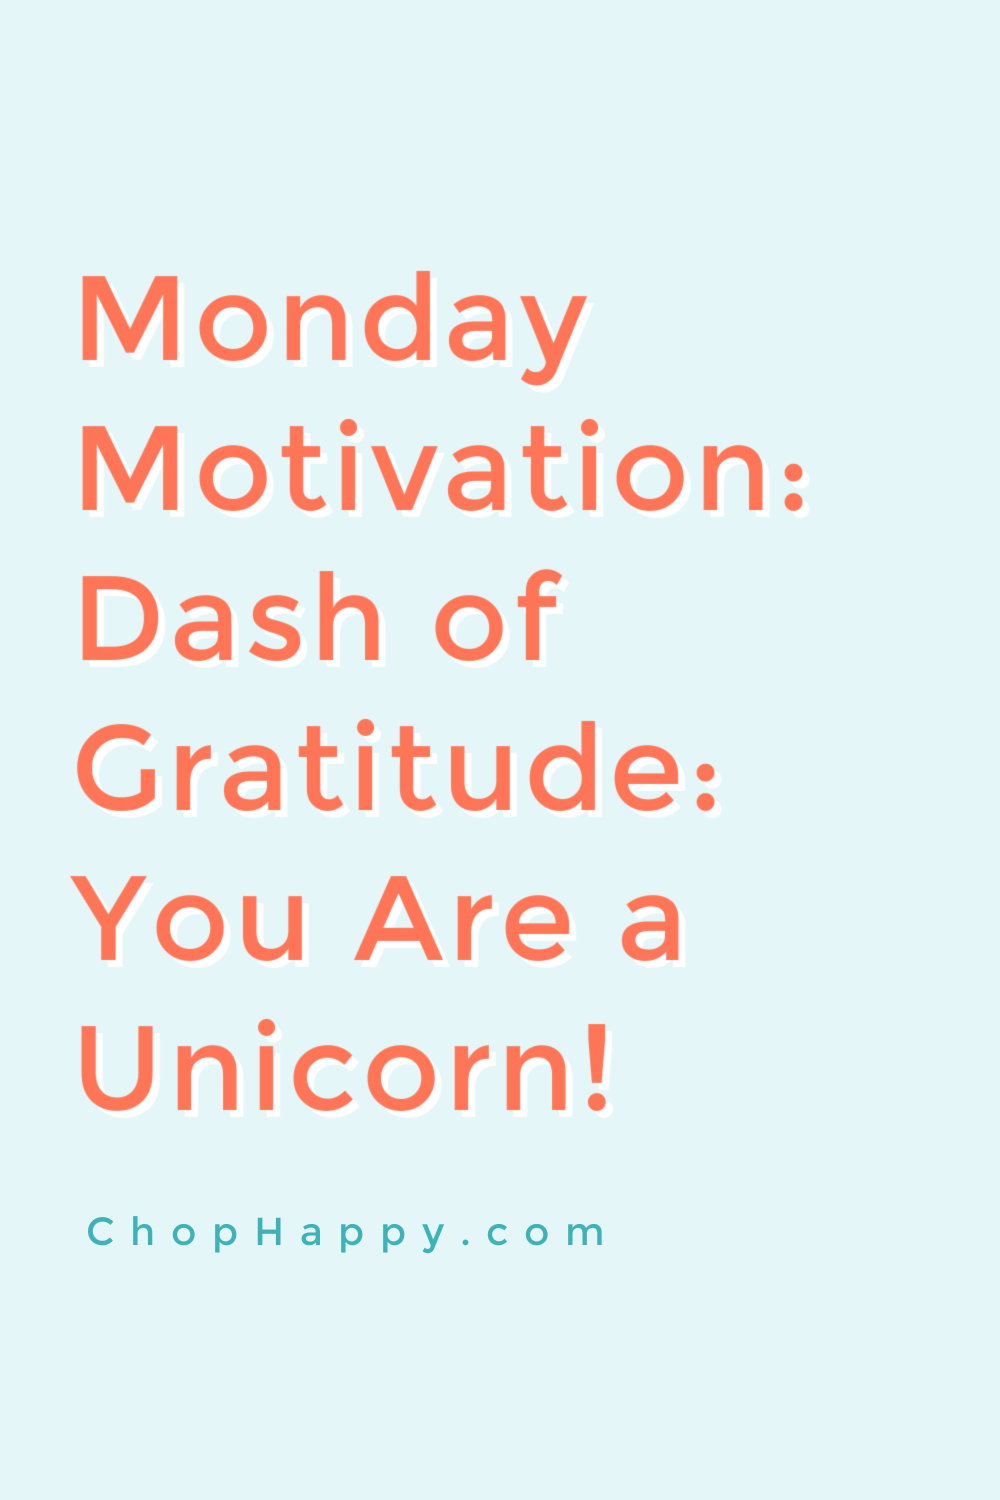 Dash of Gratitude: You Are a Unicorn. Use the law of attraction to manifest your dreams. Happy Dreaming! www.ChopHappy.com #lawofattraction #dreambig